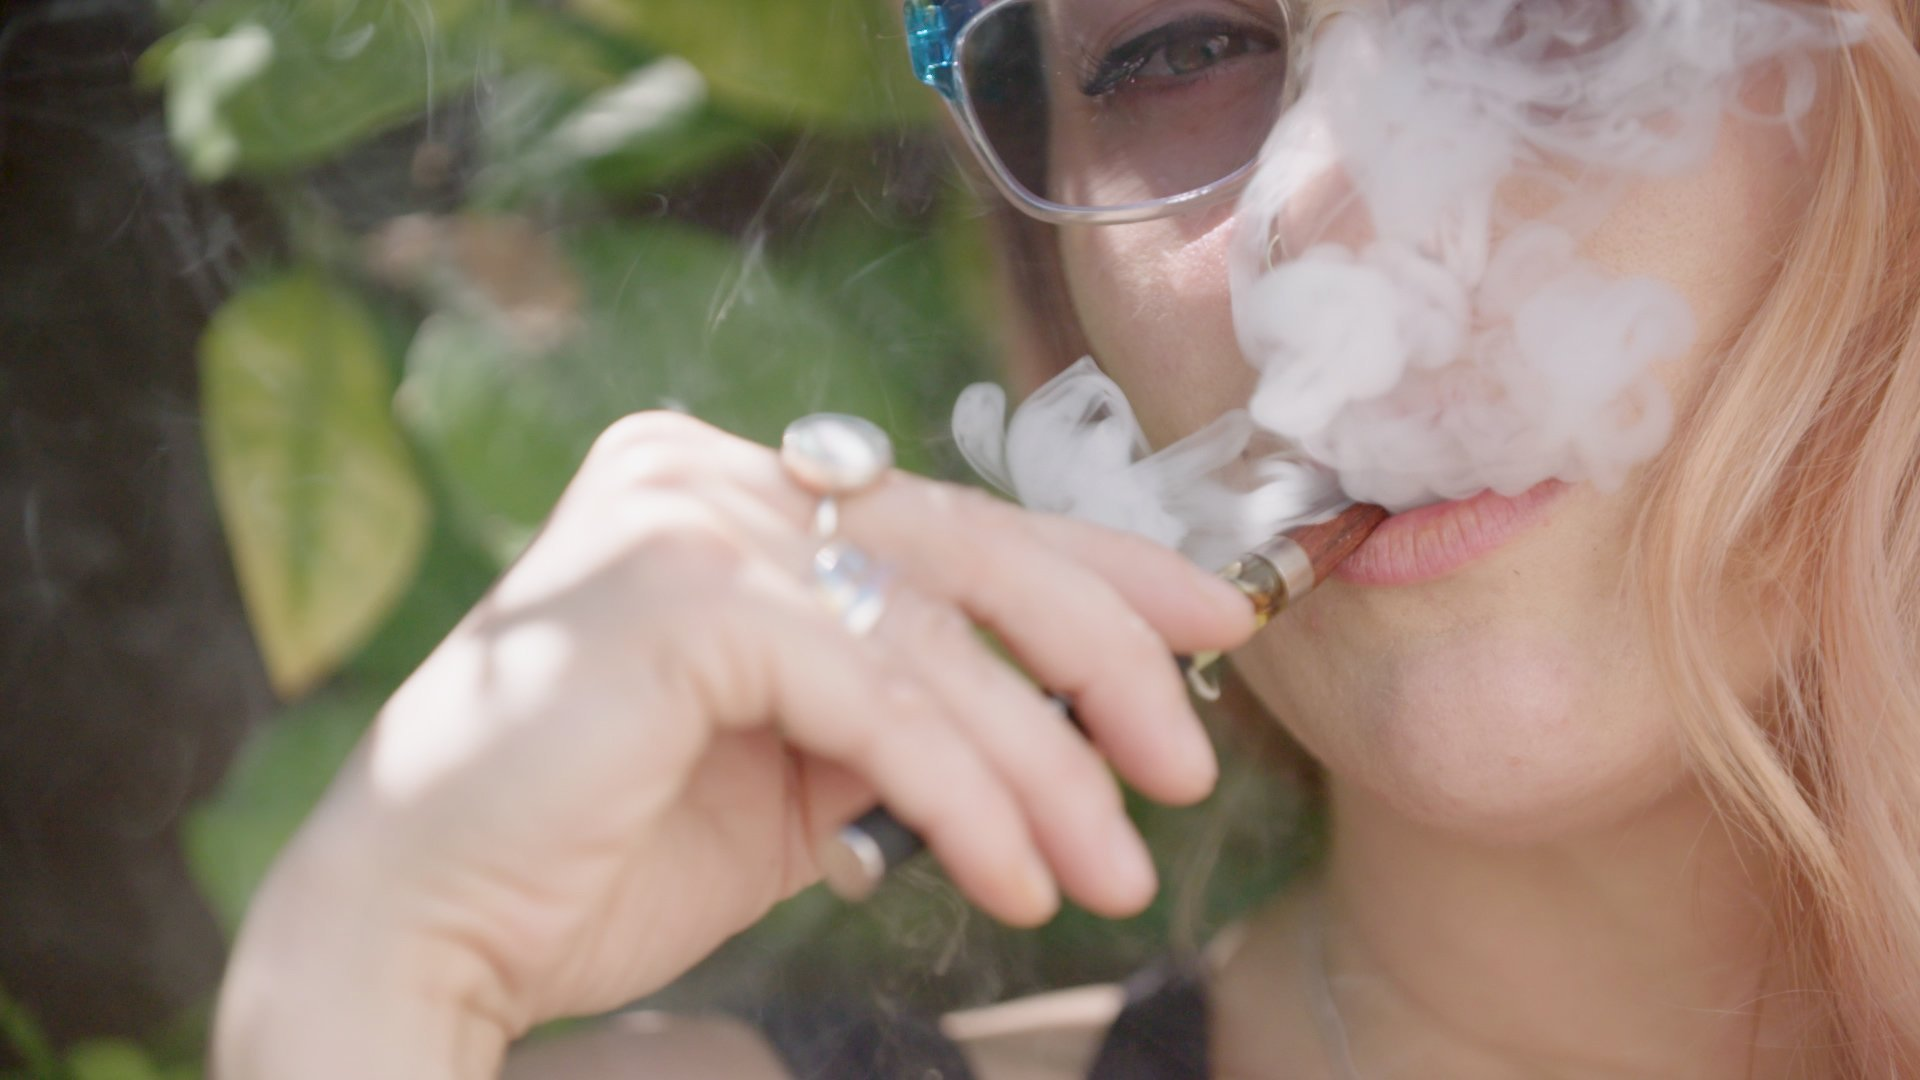 Patients at risk for heart problems should be cautious about using marijuana